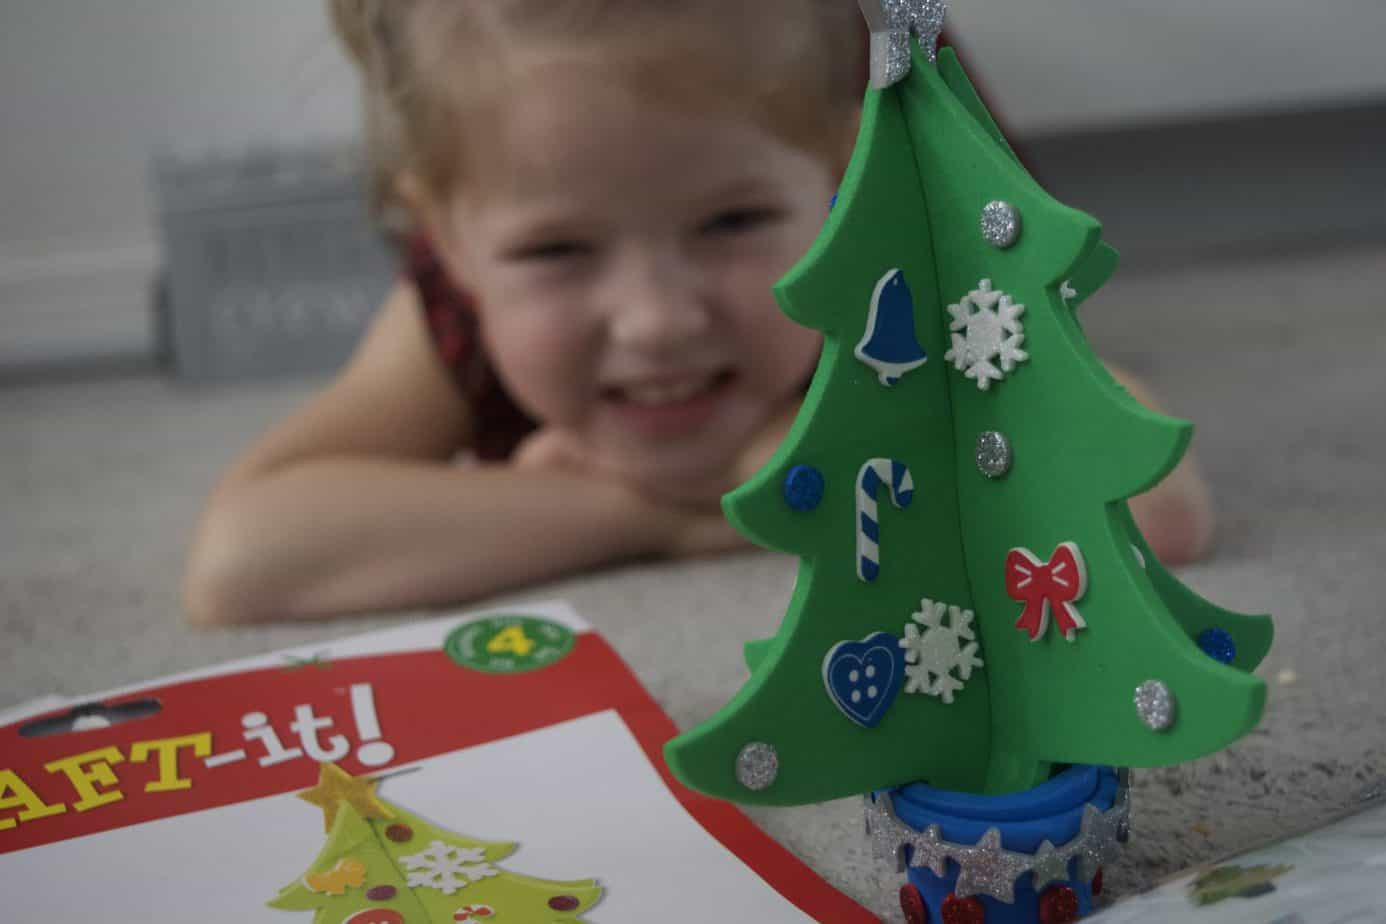 A Christmas Craft Christmas Tree from Baker Ross